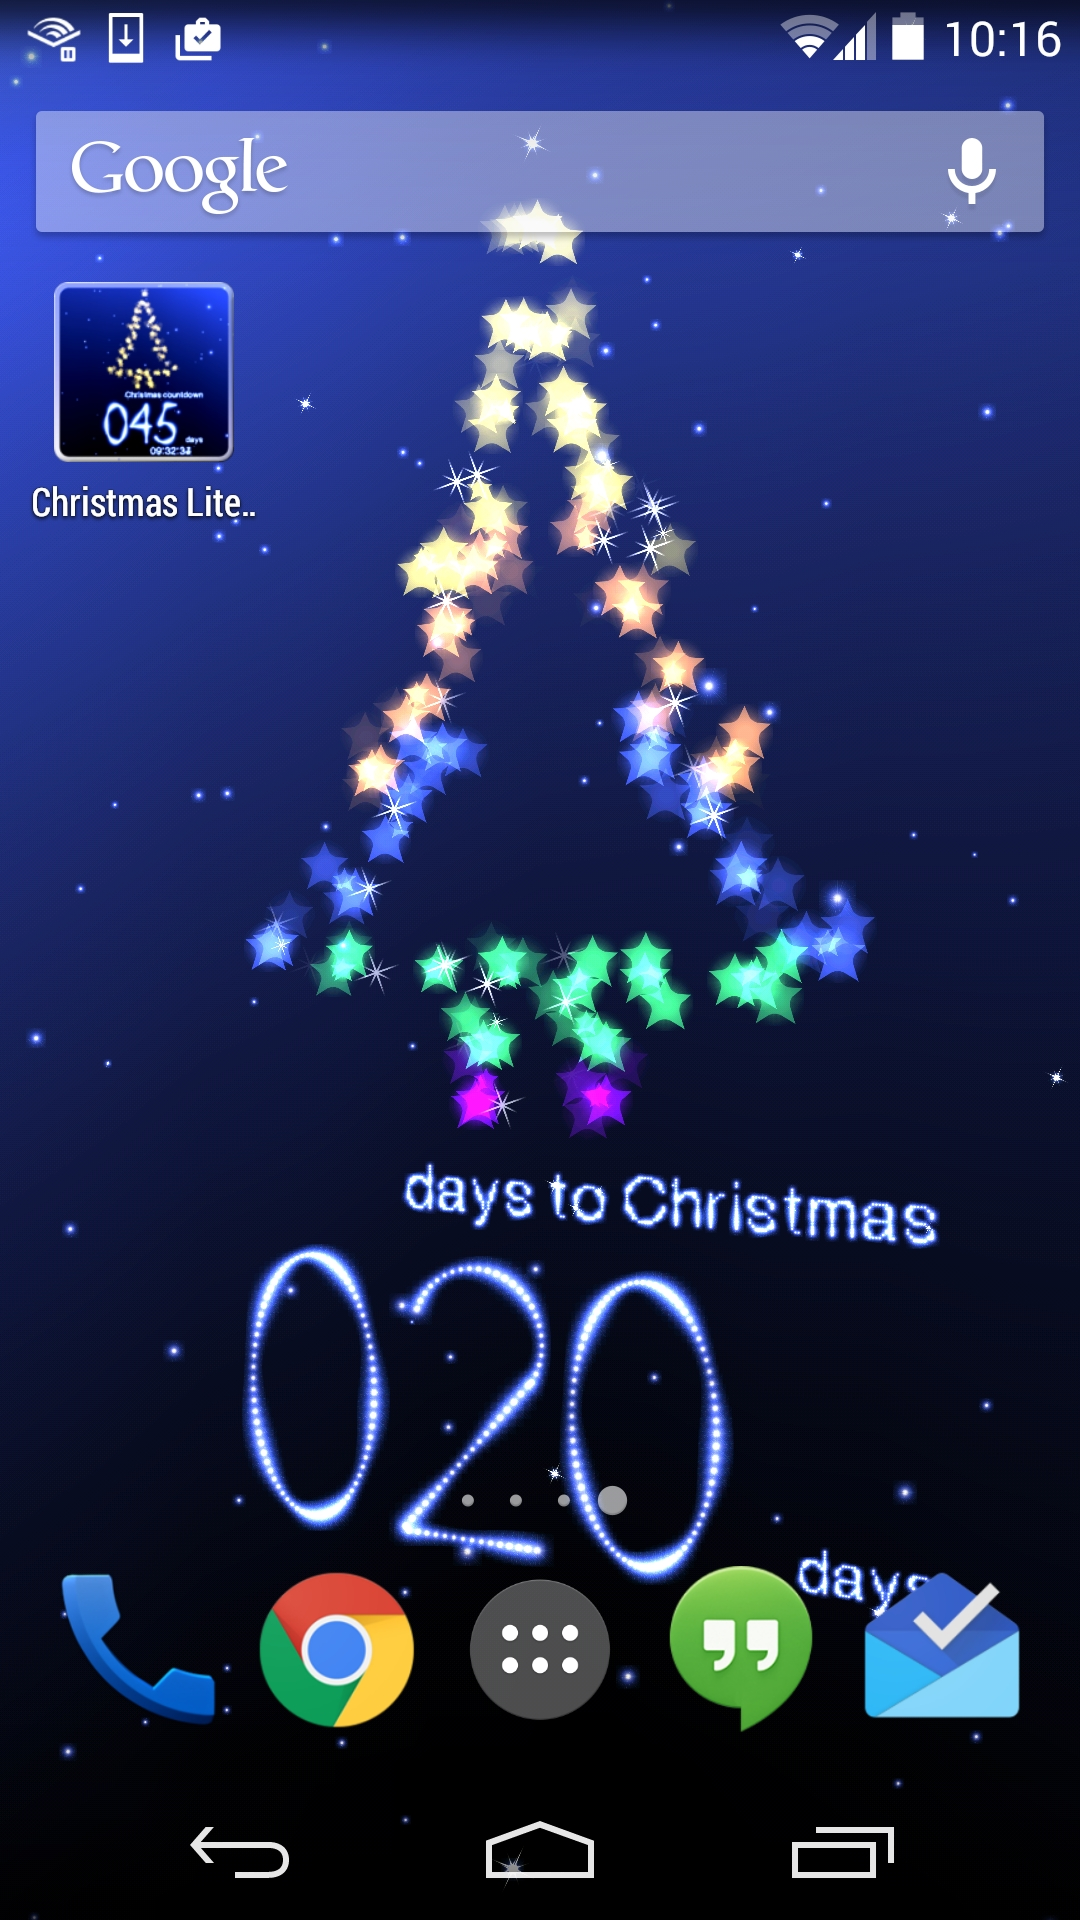 Best Christmas Countdown Apps - Tech Advisor Christmas Countdown Calendar App